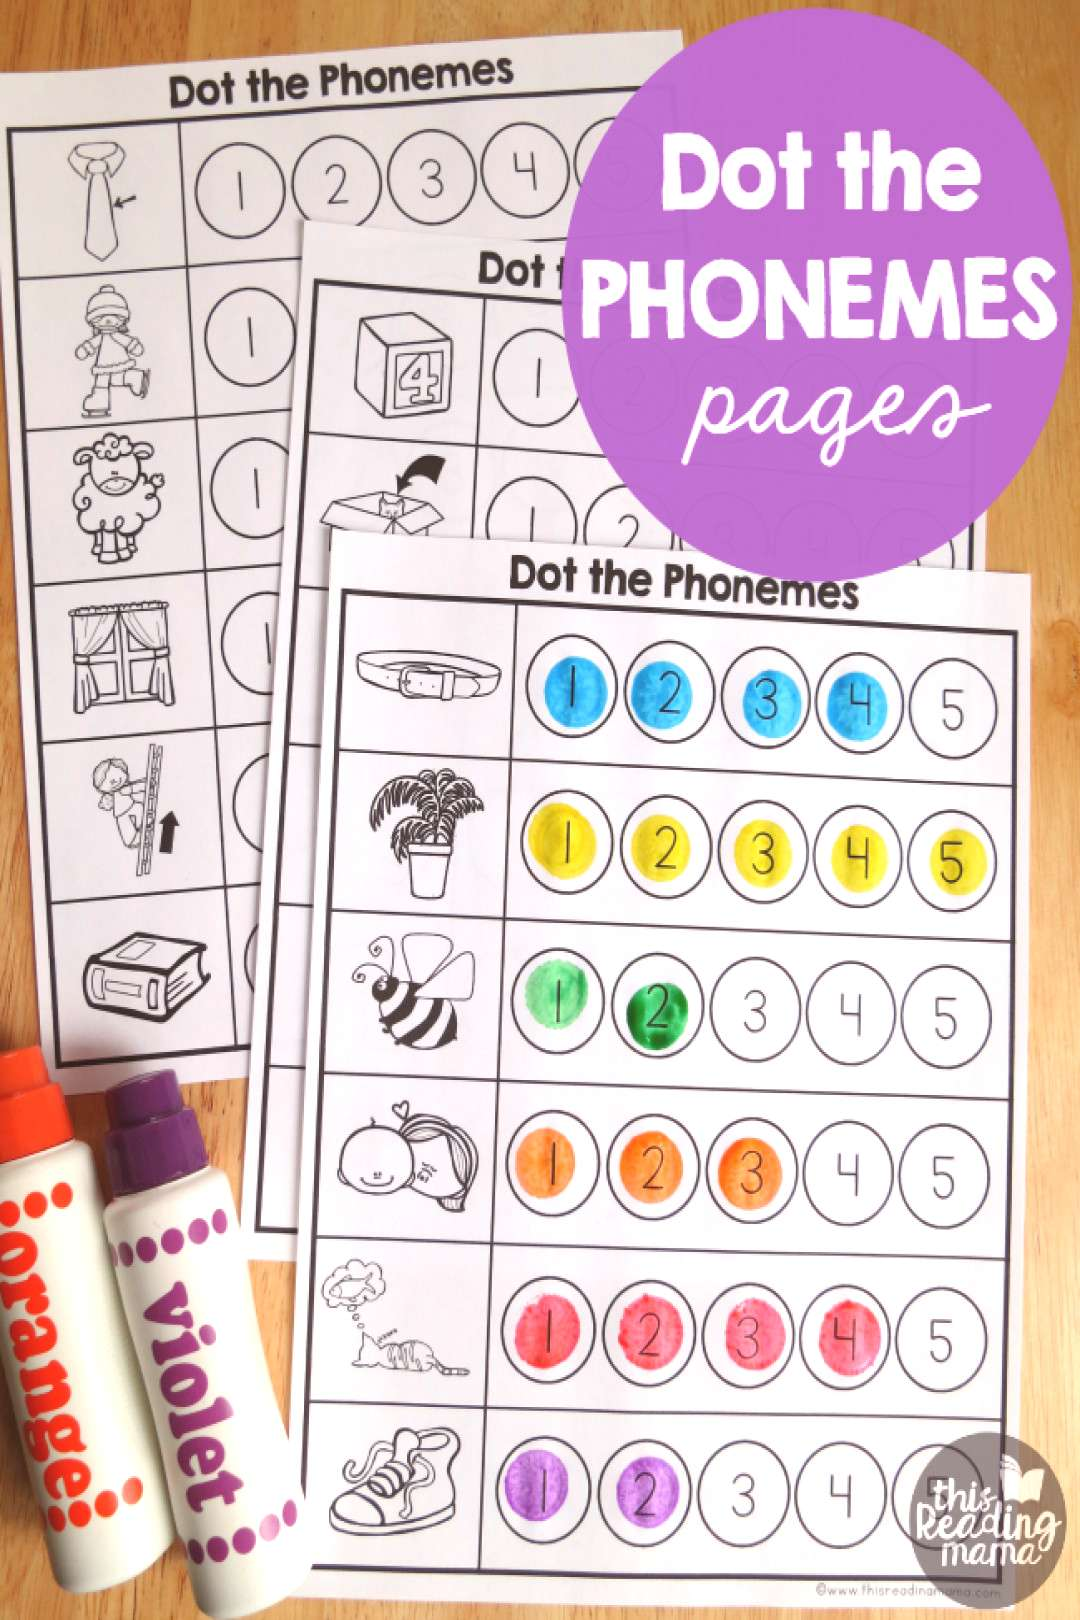 These free Phonemes Worksheets are a fun way for kids to count the individual sounds in words and a